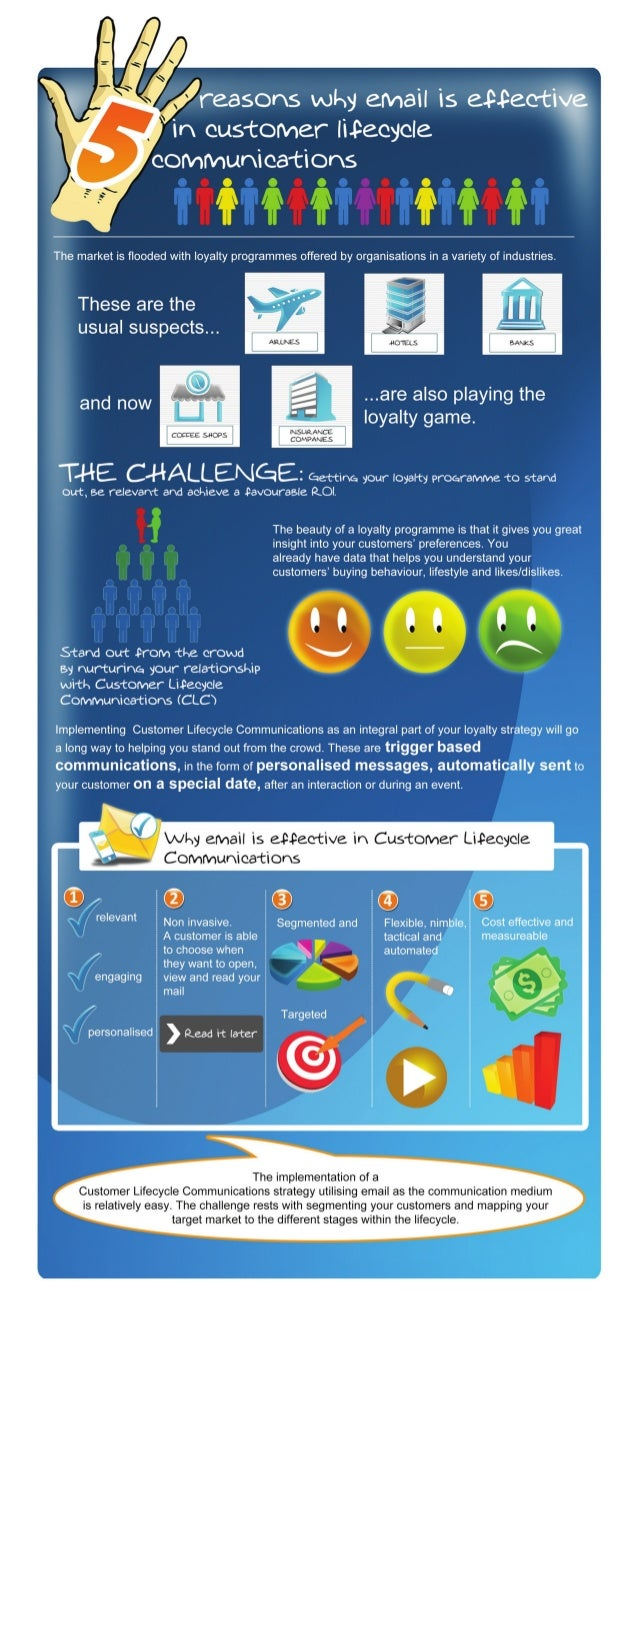 5 reasons - Effective customer lifecycle communications